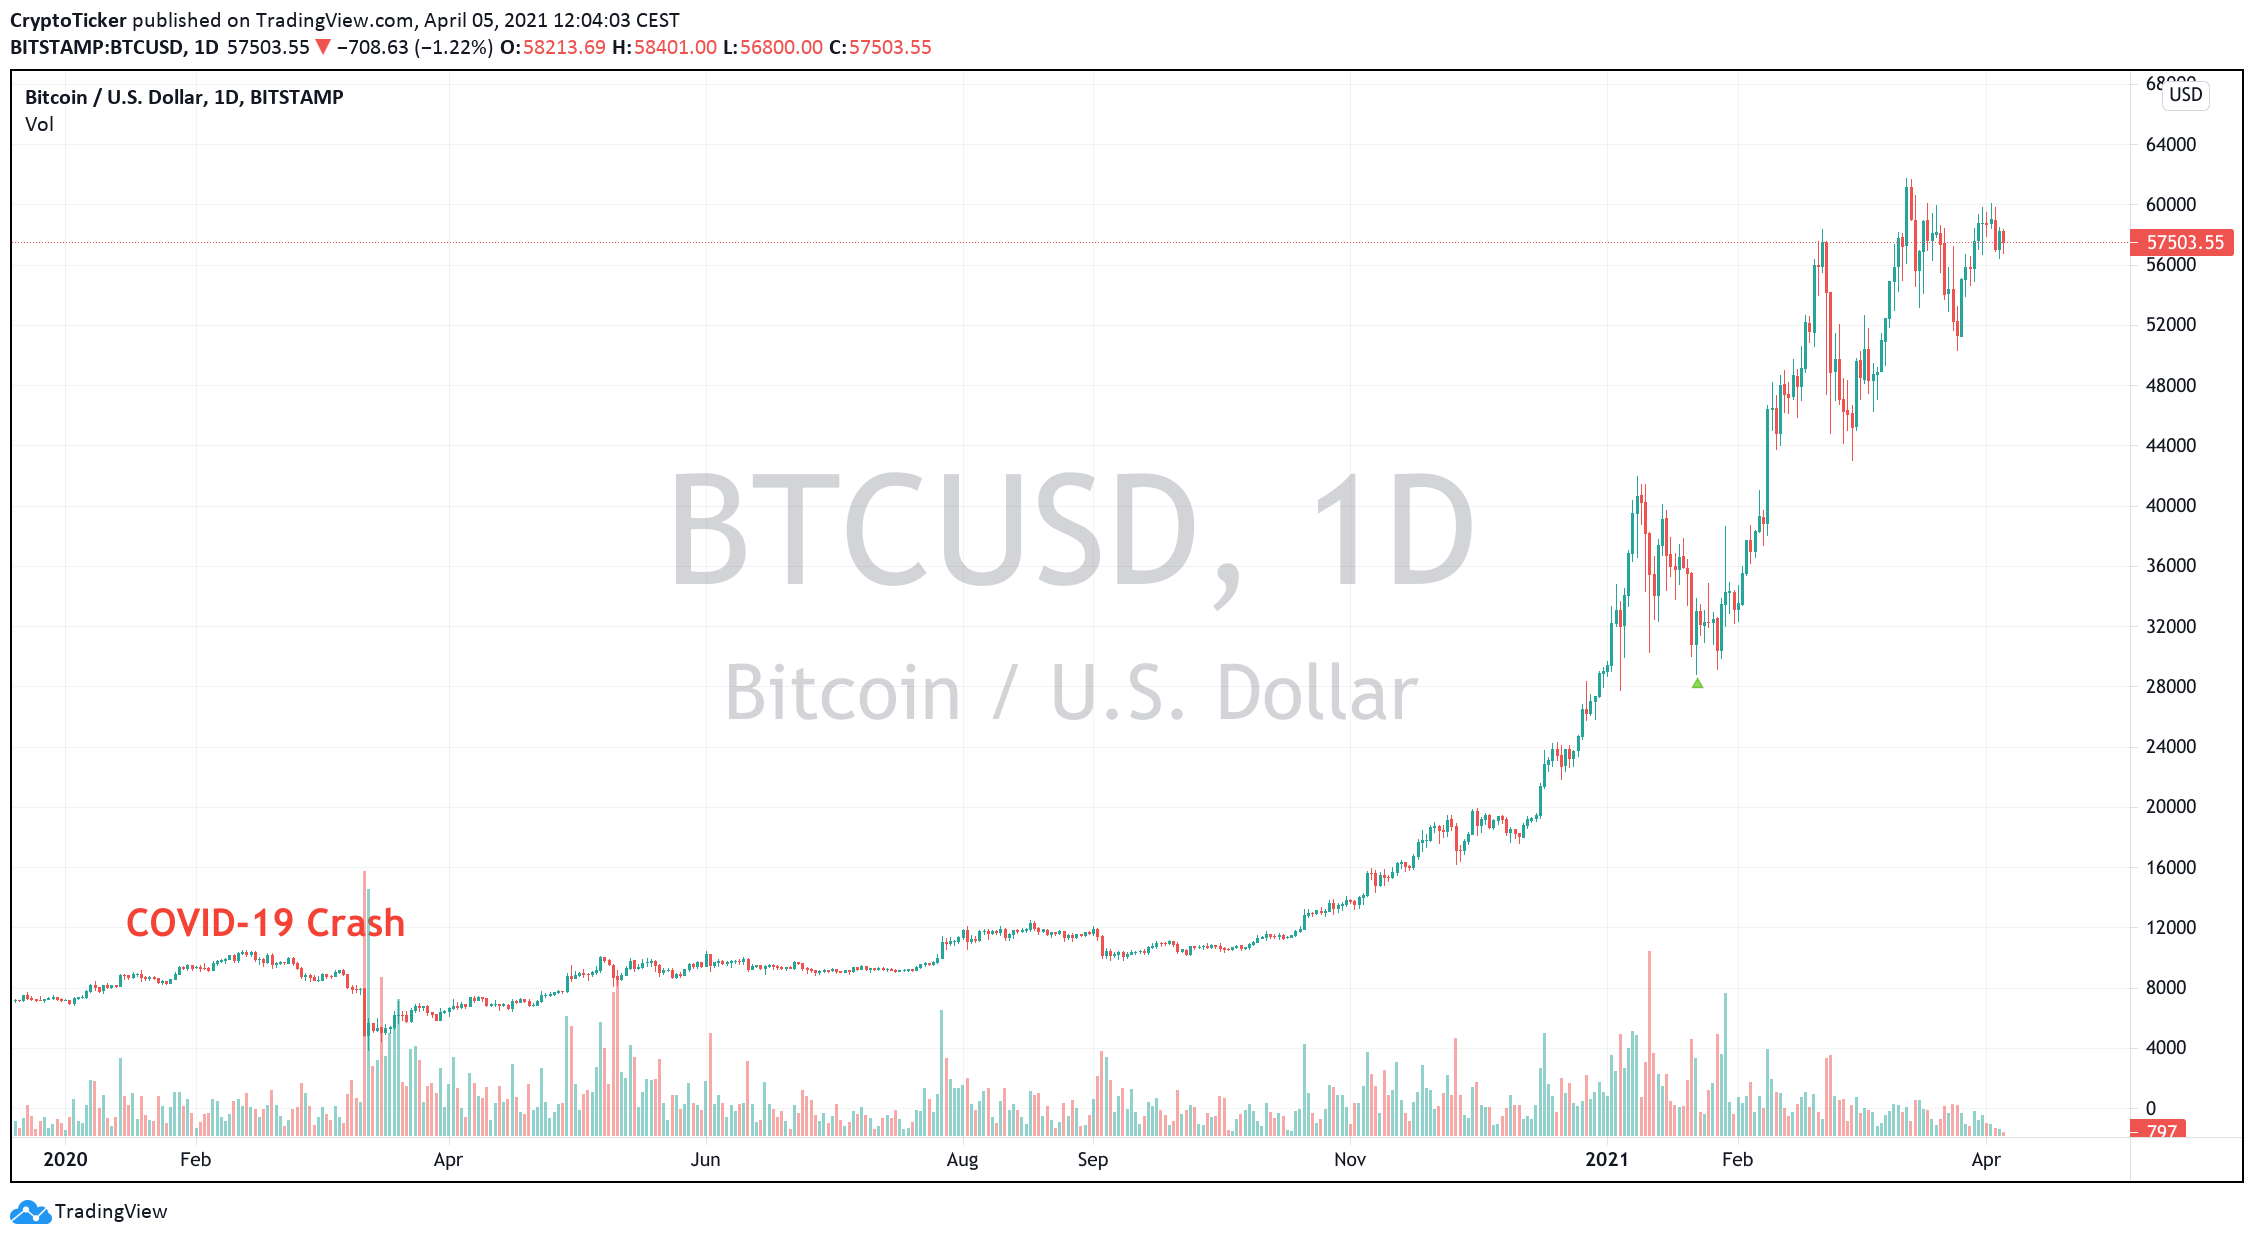 BTC/USD 1-day chart showing Bitcoin's price recovery and beyond